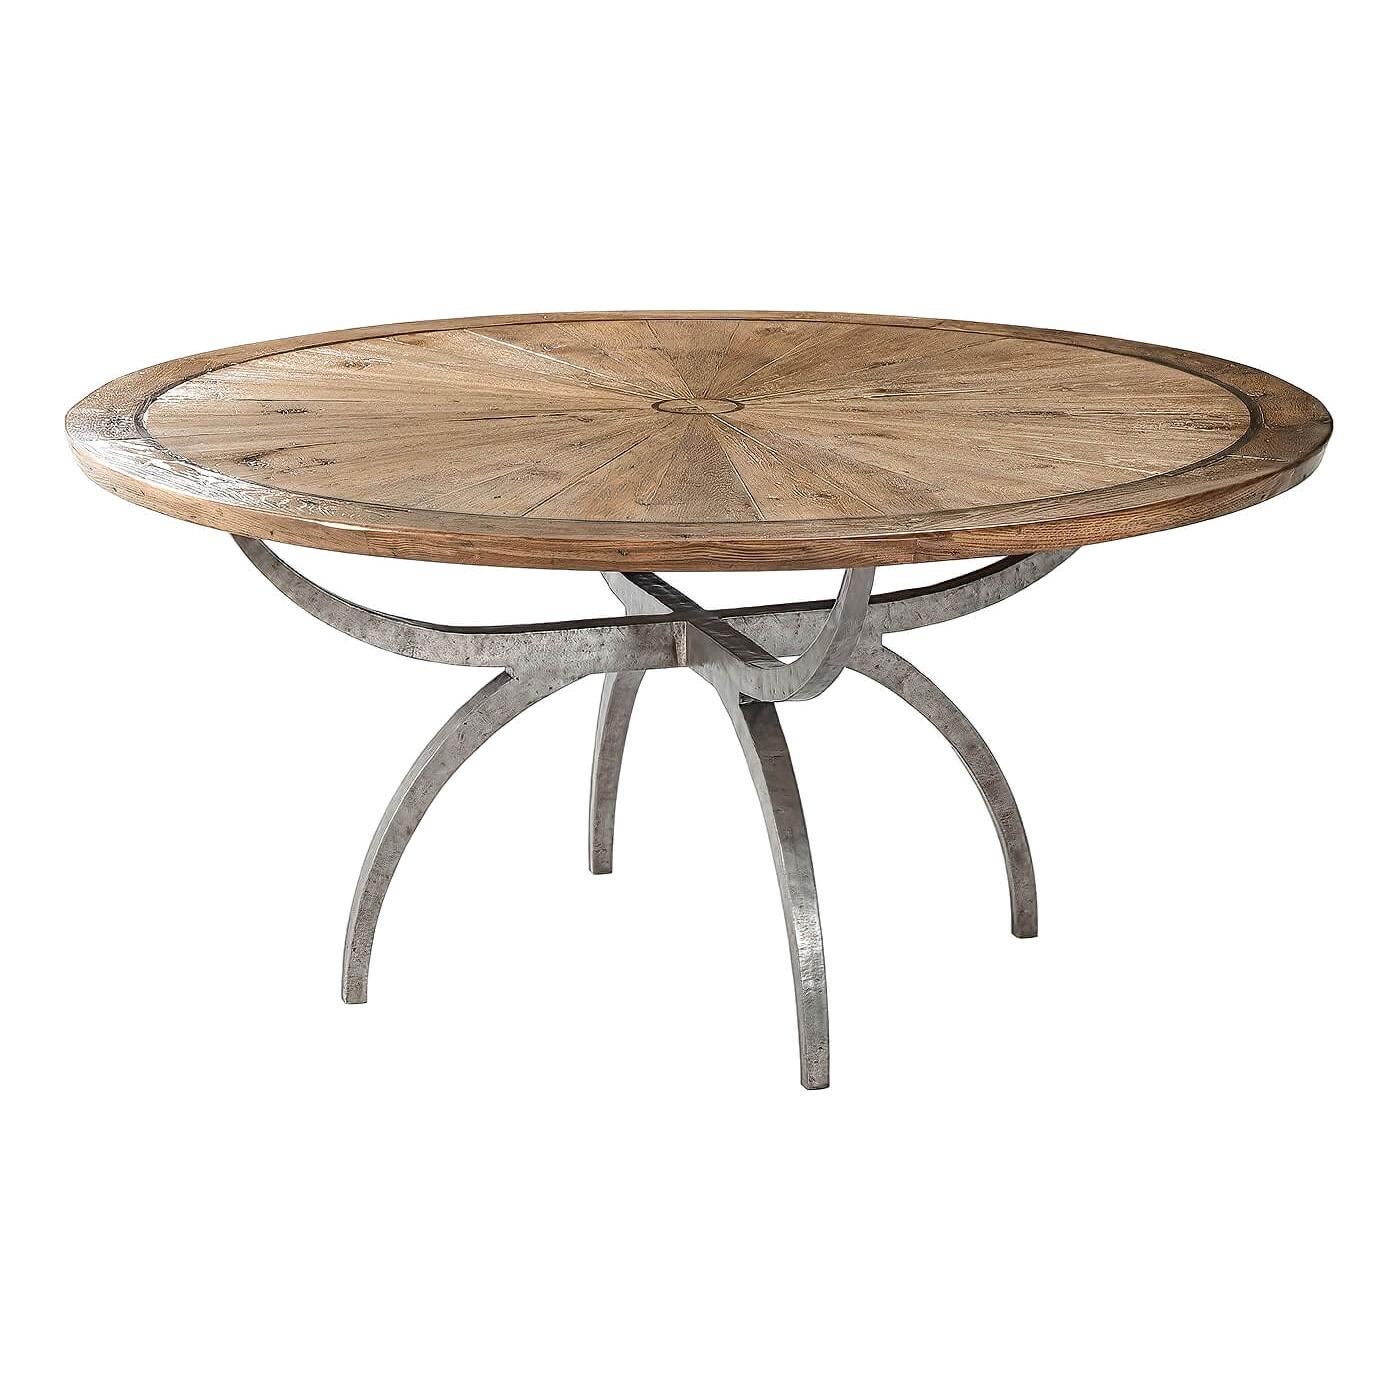 Modern Rustic Round Dining Table